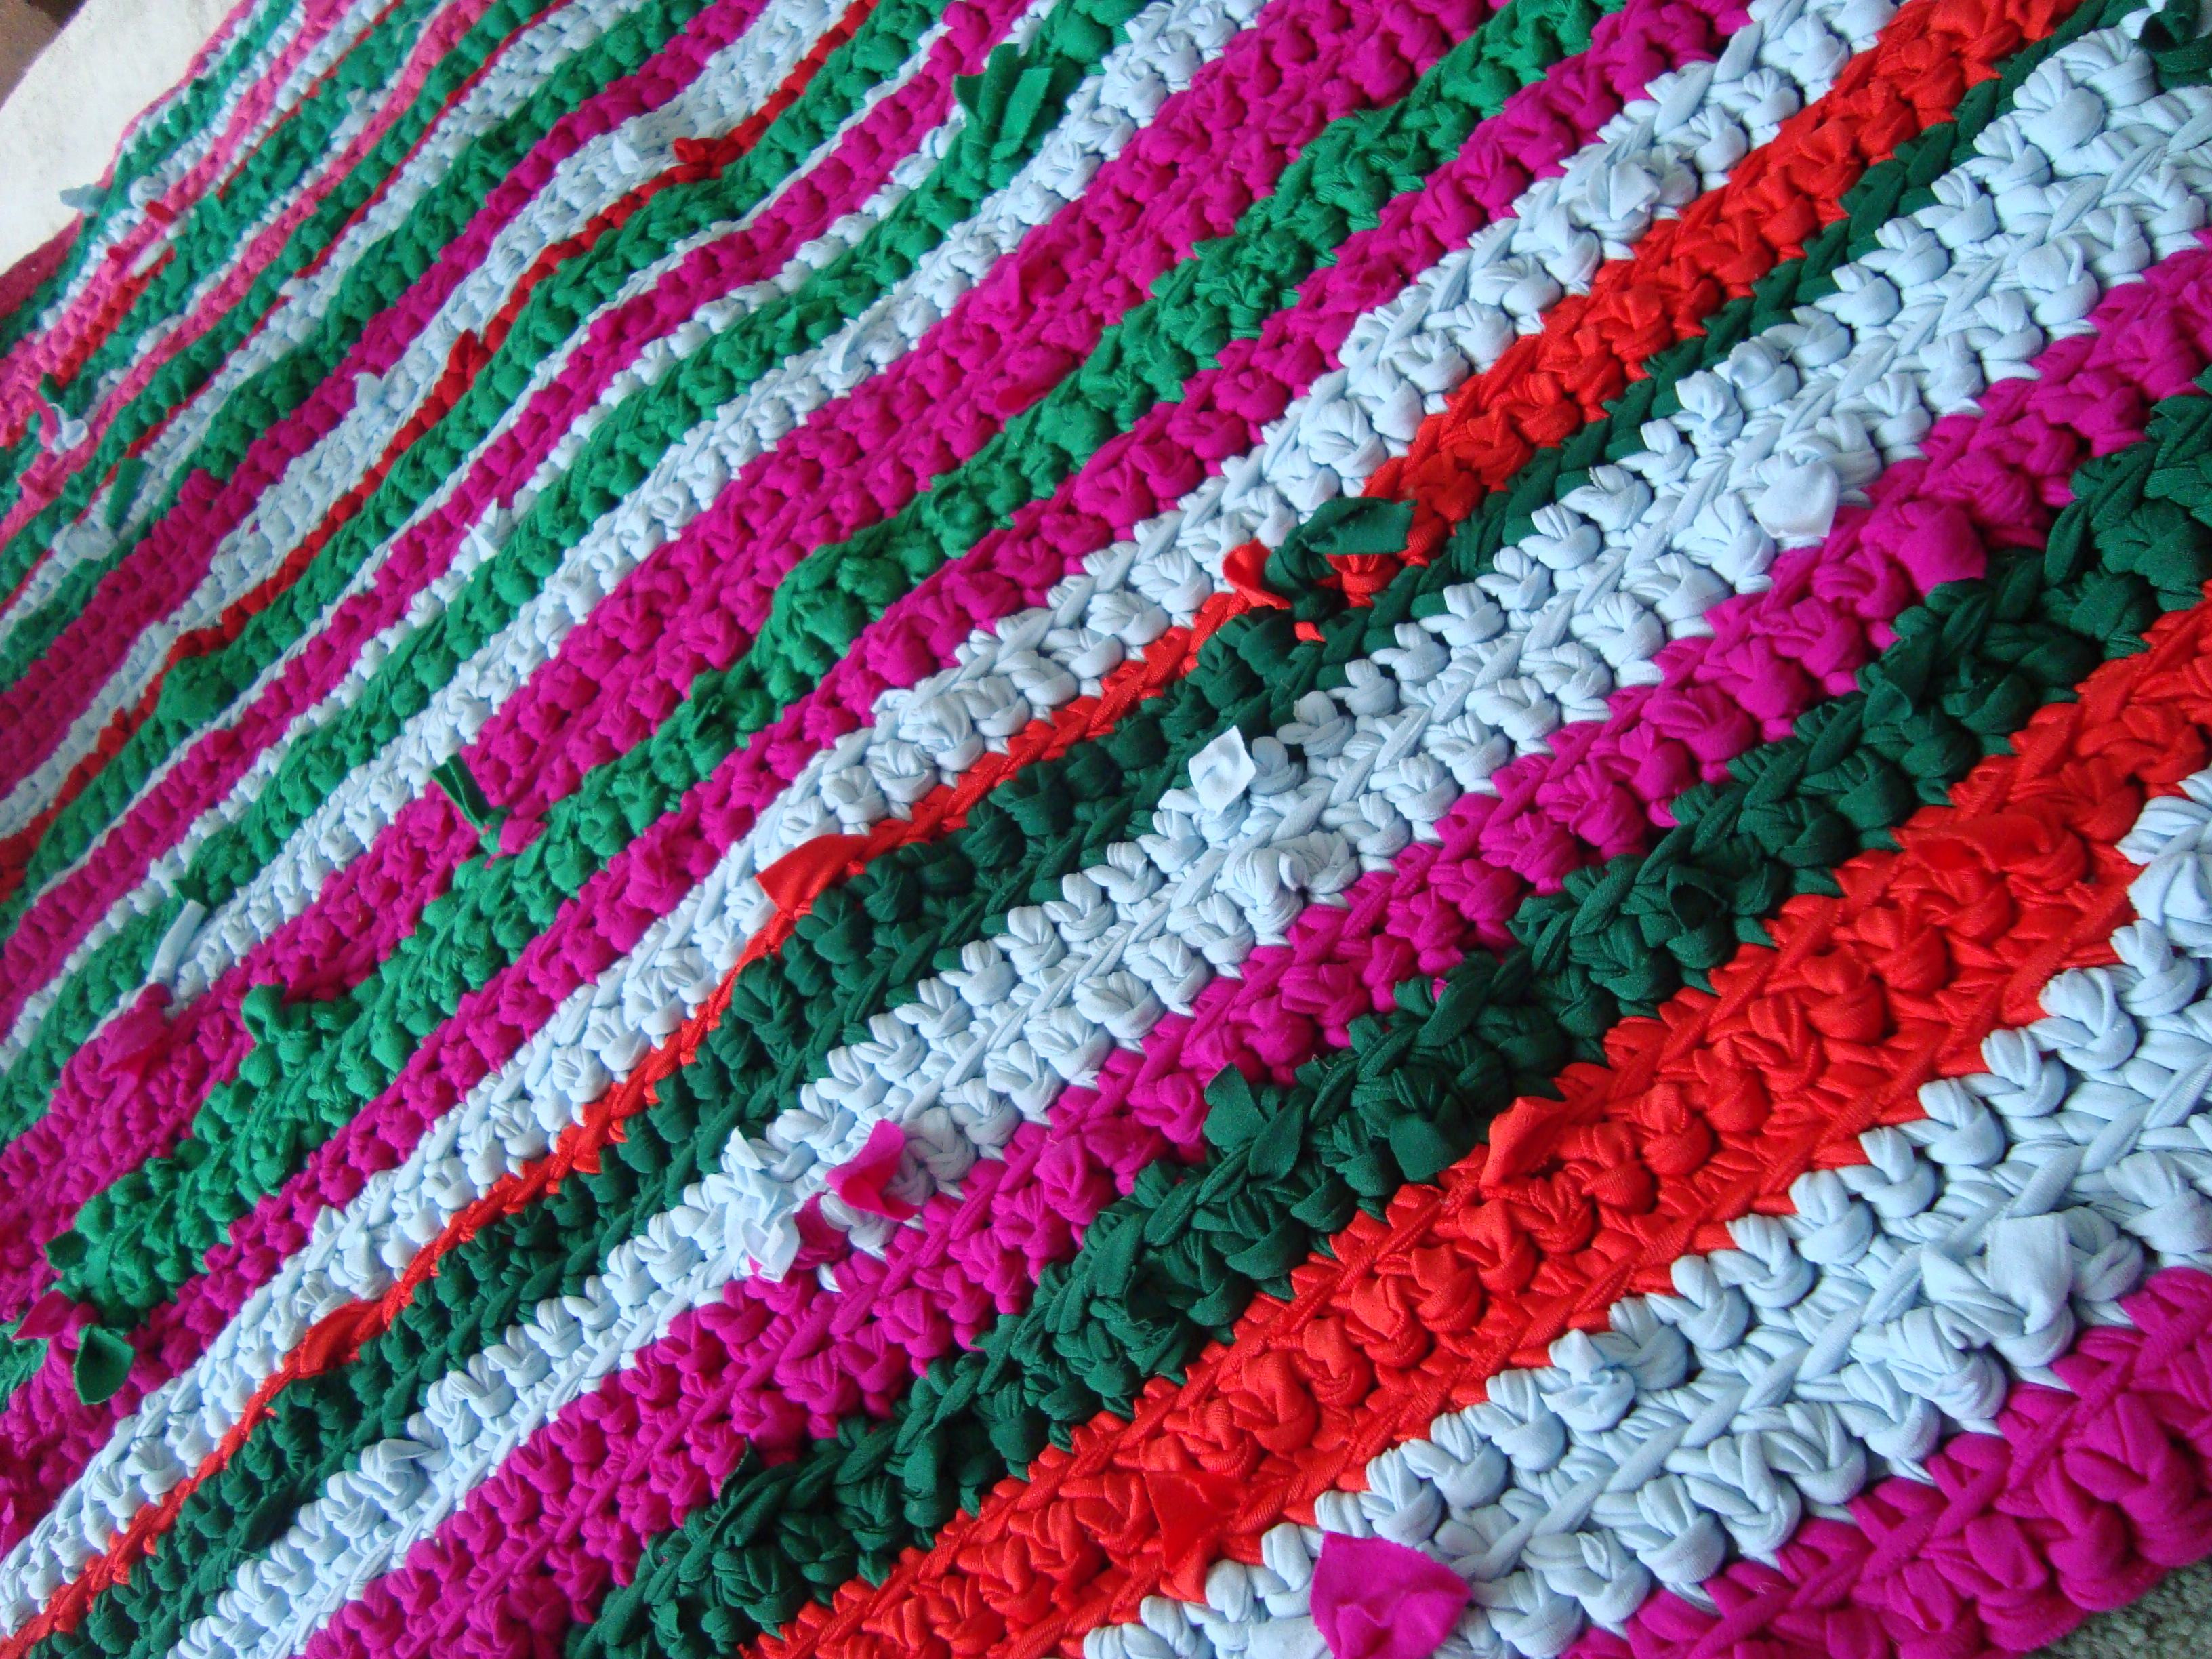 Crocheting Rugs Book : Crochet rug Cooking, Cakes & Children